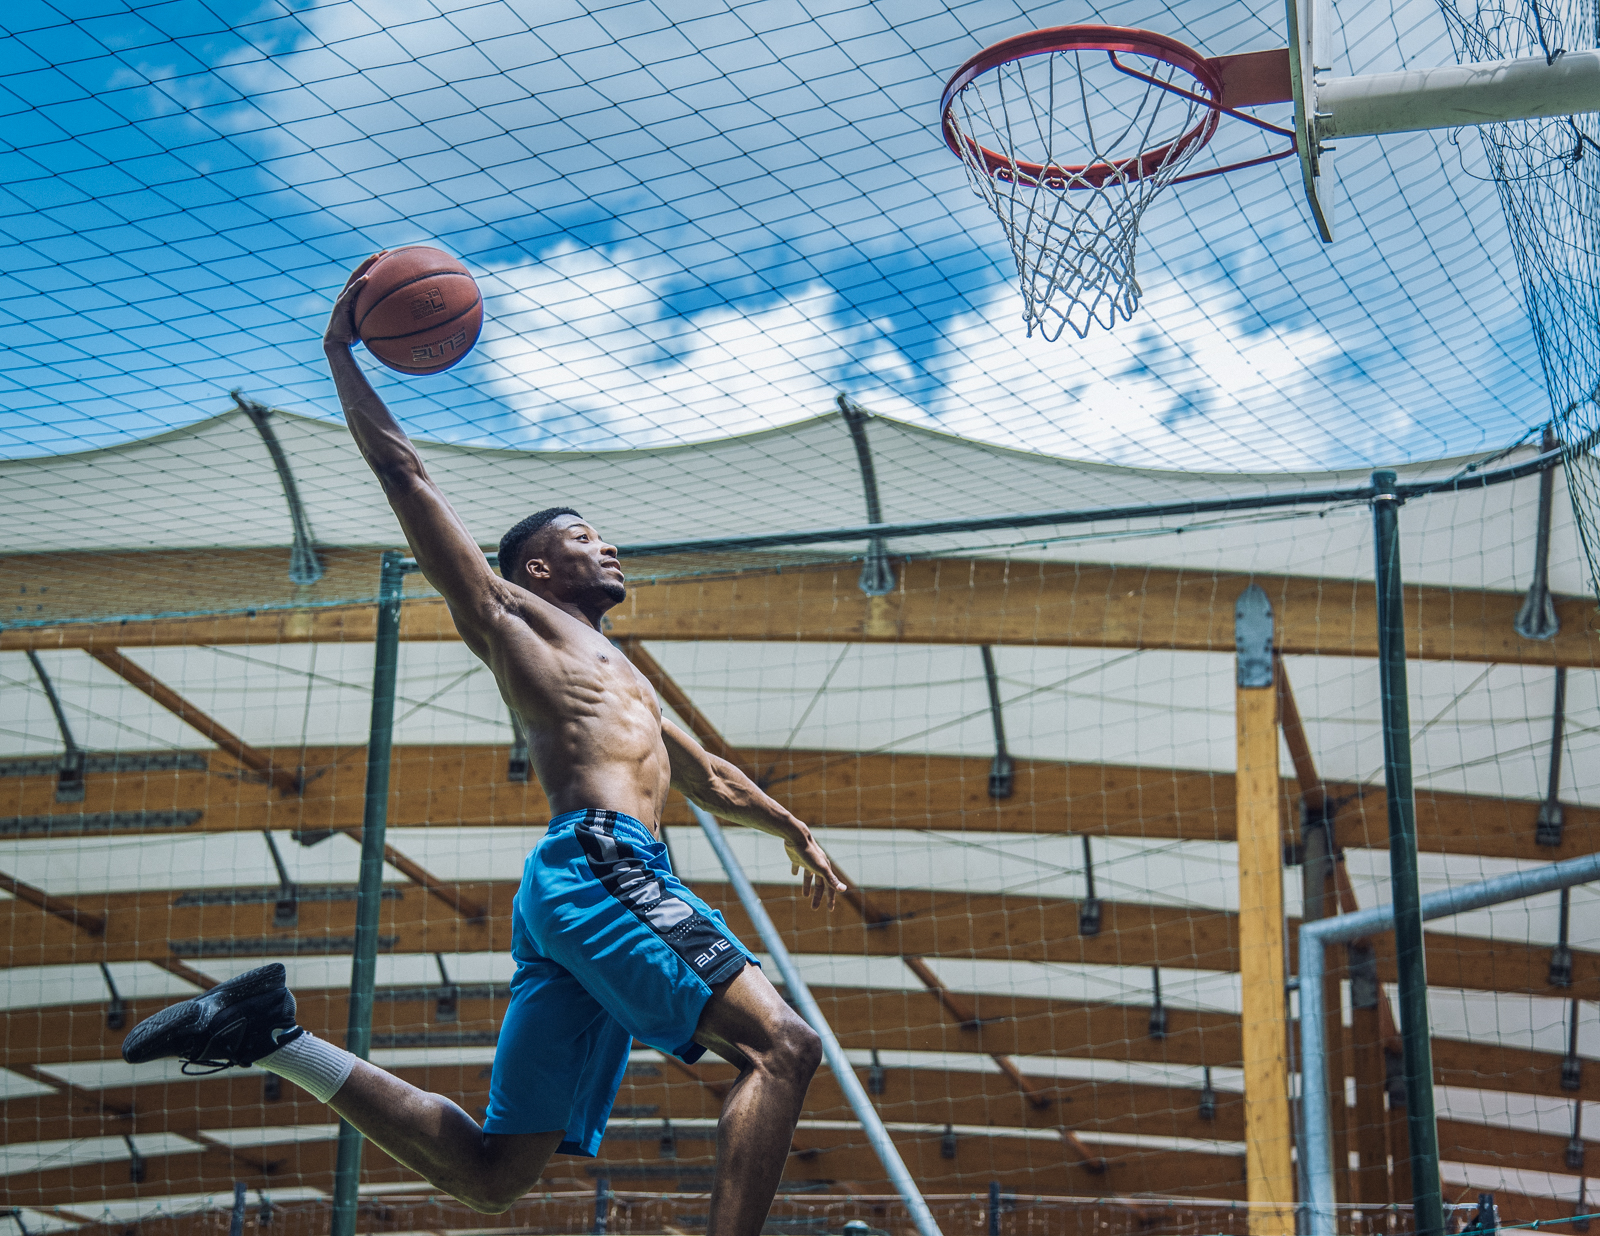 Semi pro french basketball player training outside in Paris, 2016. This picture represents determination, power, focus and perseverance on the long journey as an athlete to be the best. Some win but out of all of them, unfortunately the majority will never quite reach... the top.